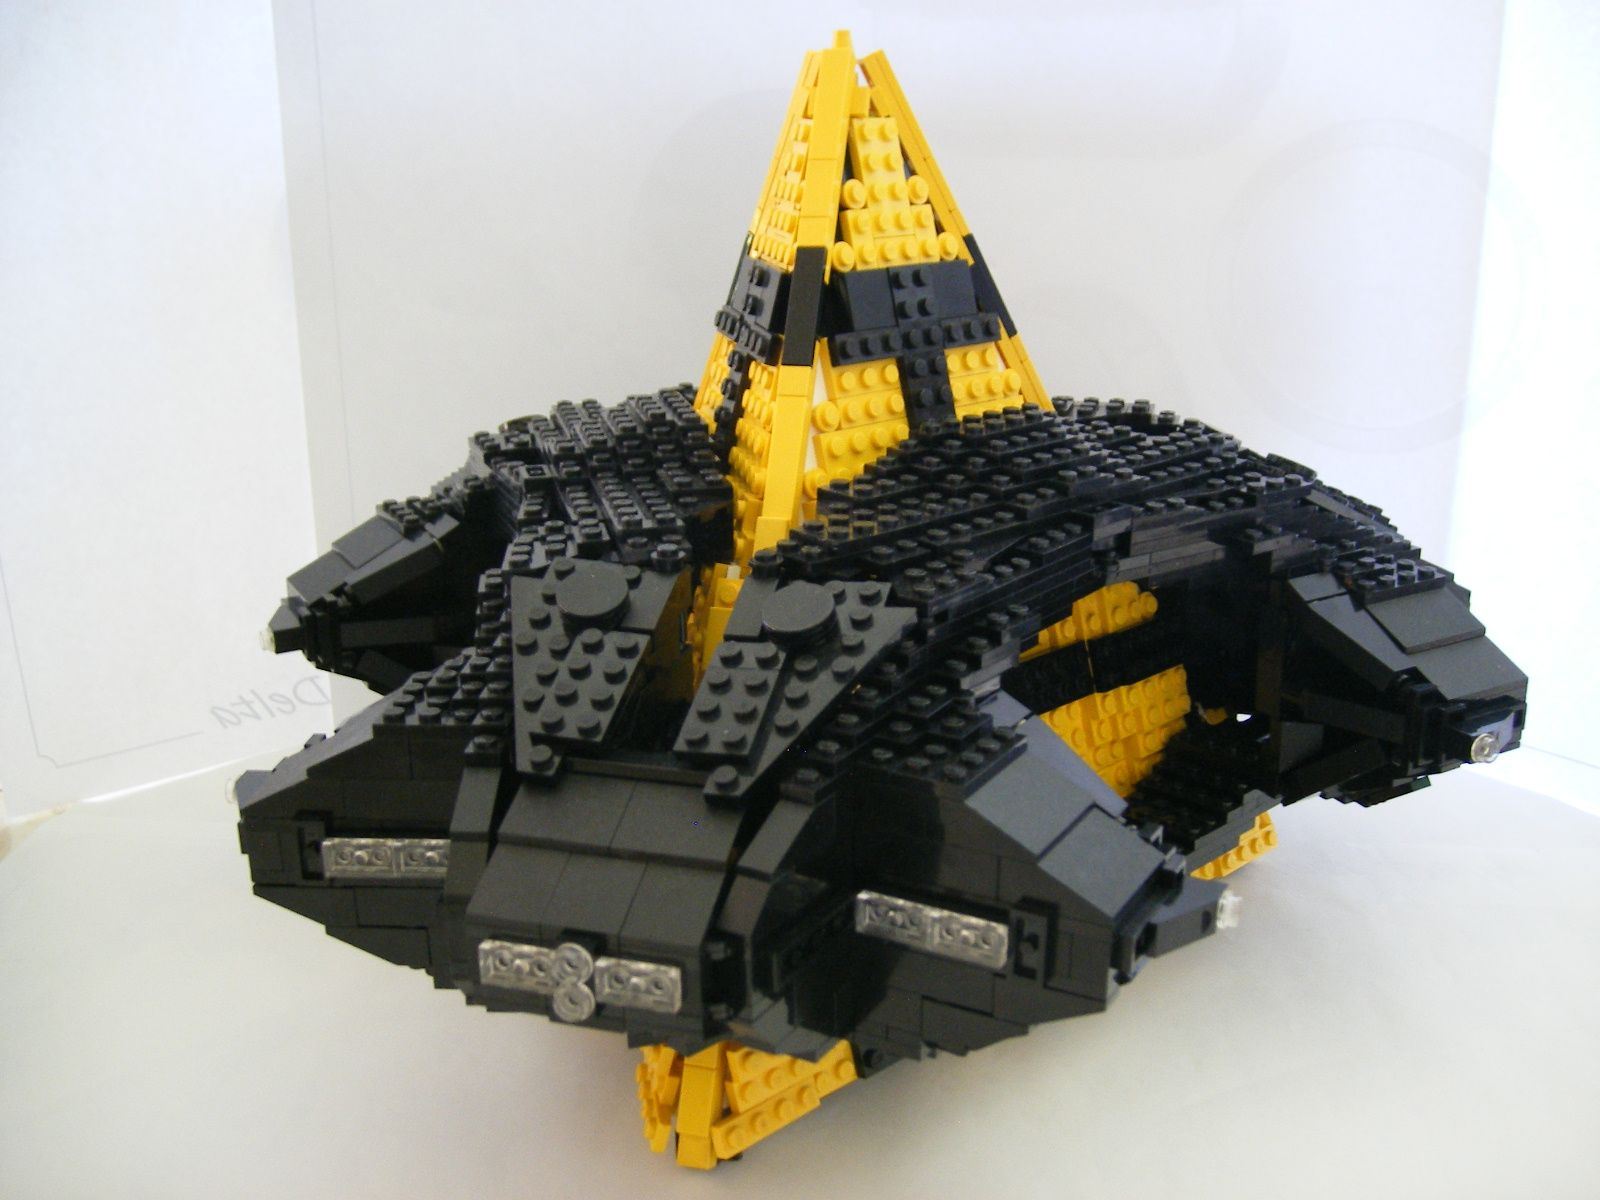 Lego hatak ship from Stargate SG1